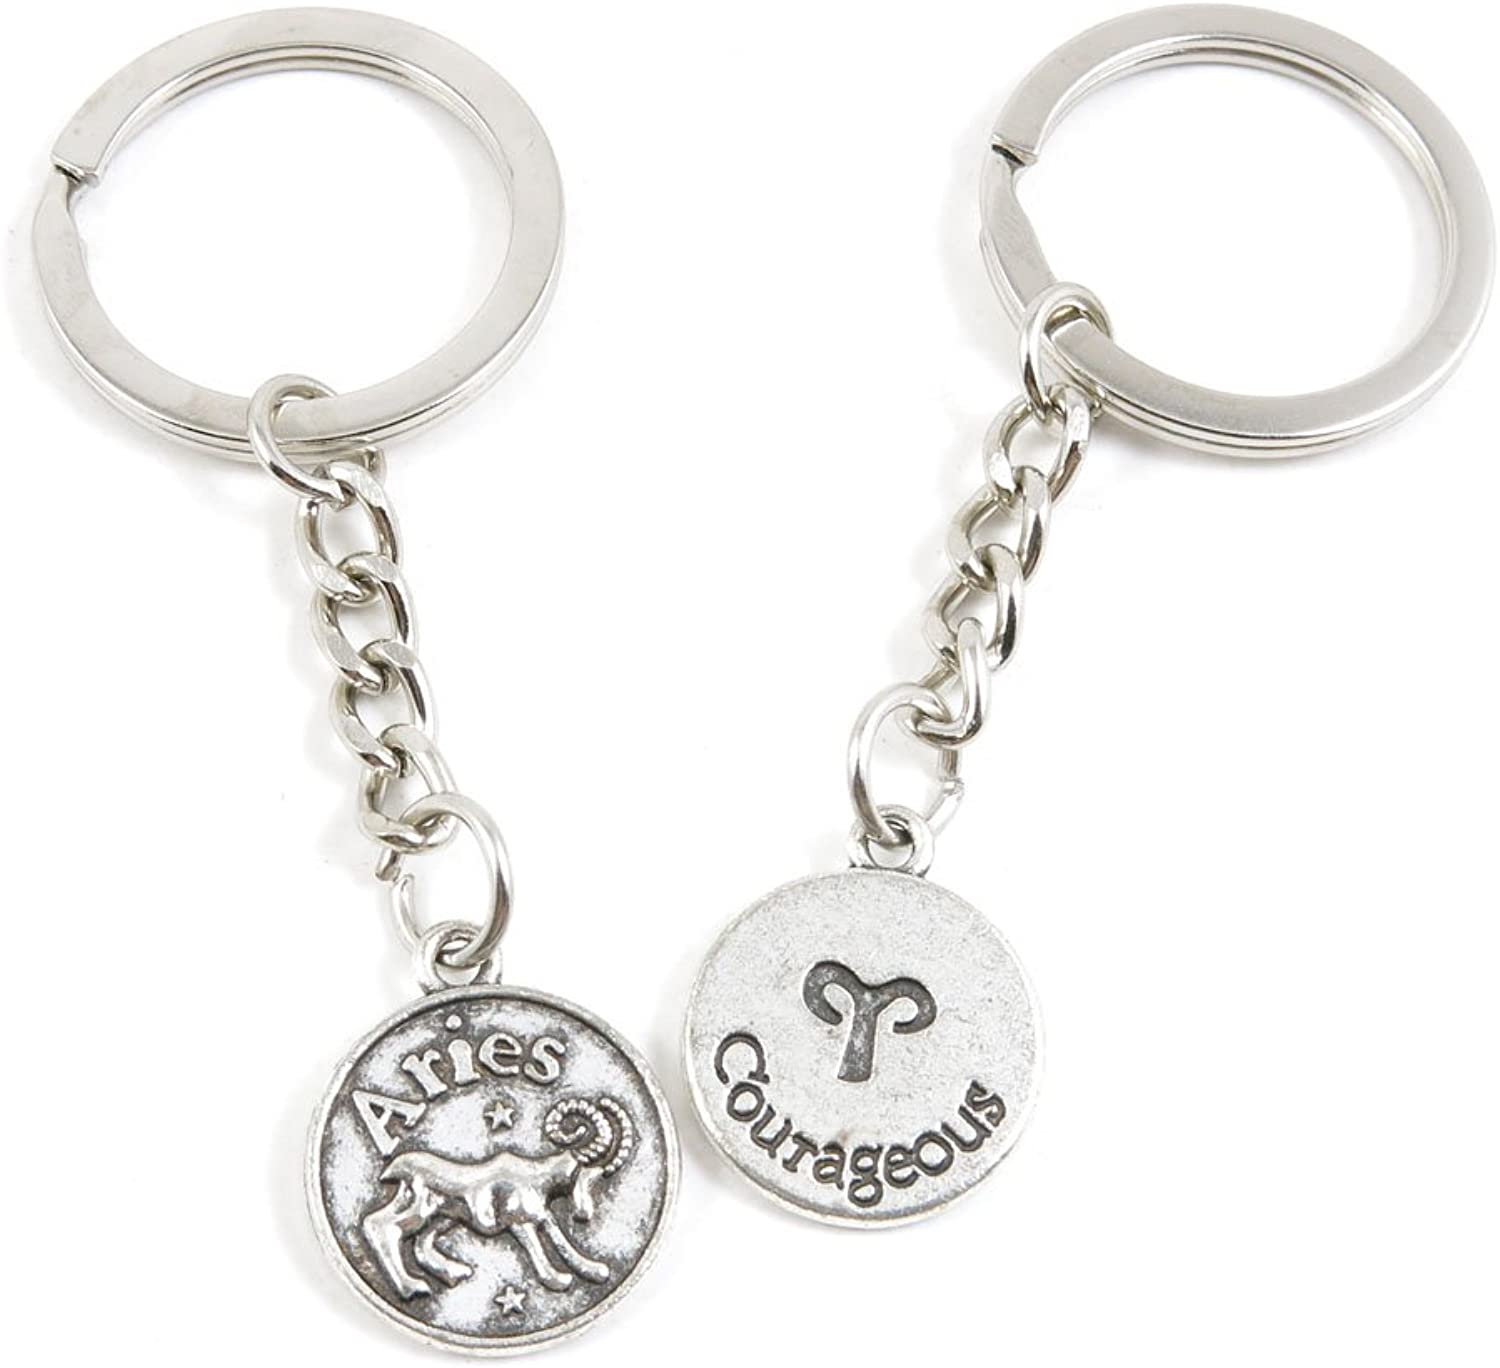 180 Pieces Fashion Jewelry Keyring Keychain Door Car Key Tag Ring Chain Supplier Supply Wholesale Bulk Lots T6XO6 Aries